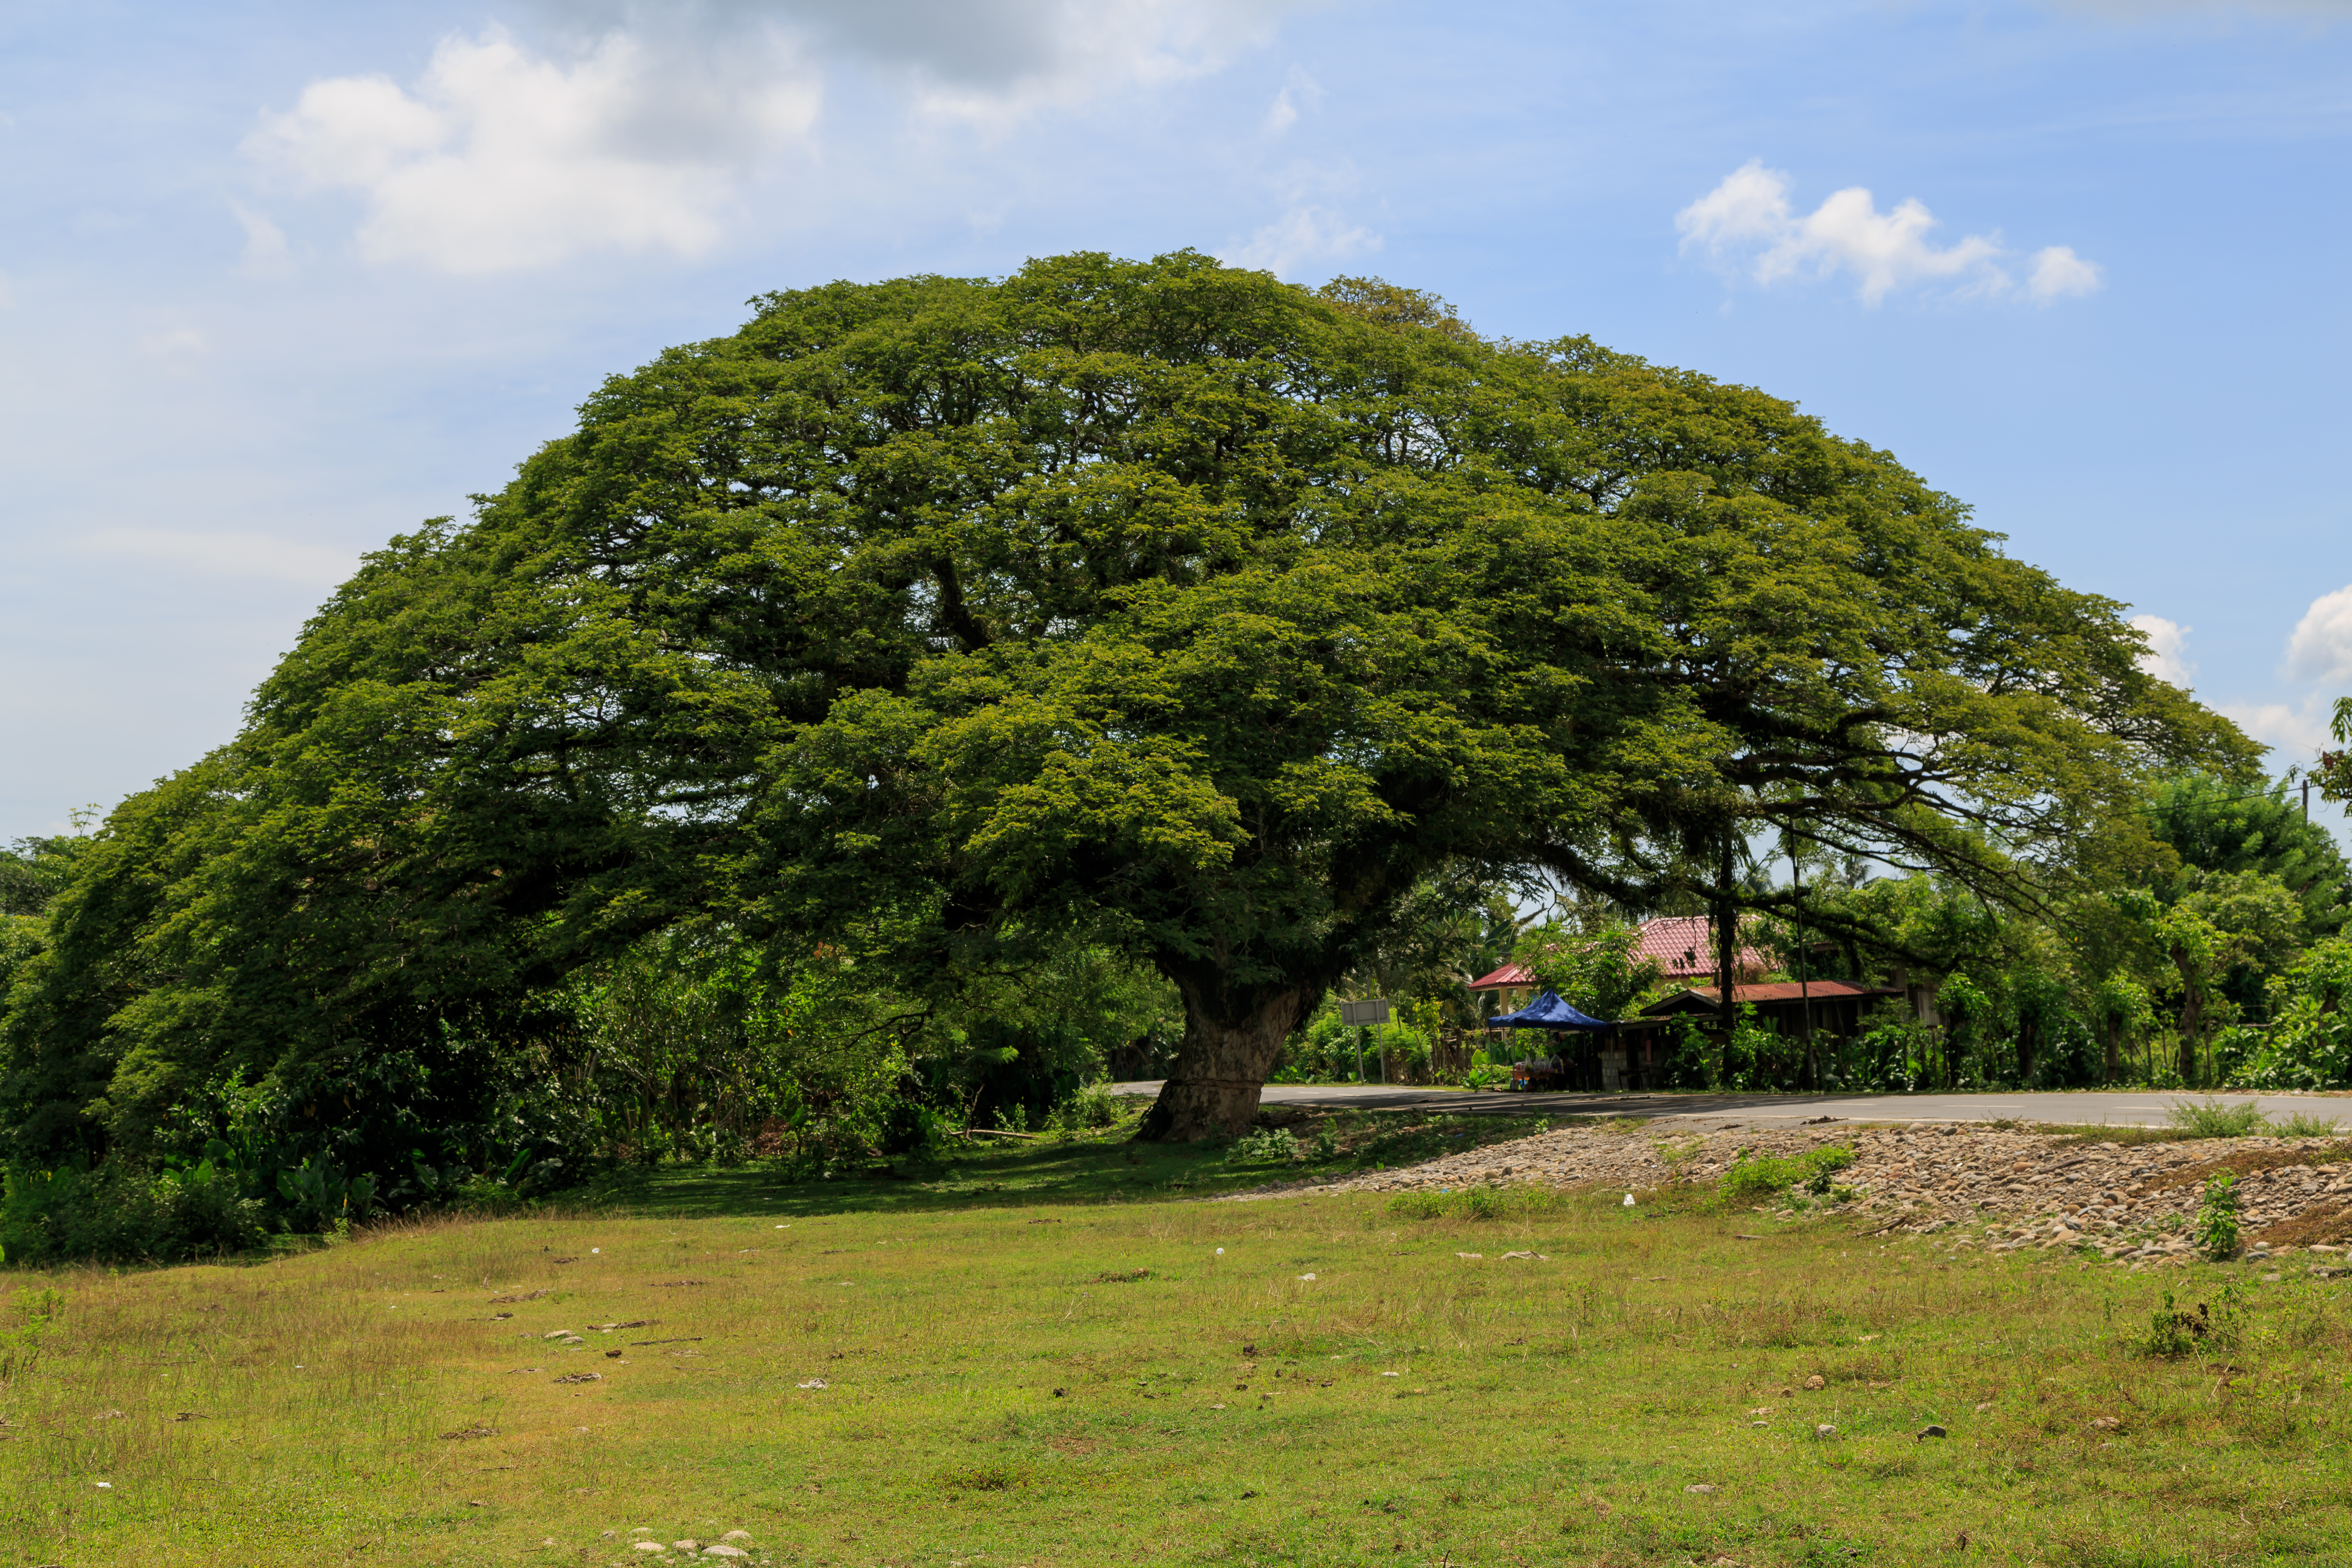 Typical tree with wide-spreading canopy. Photograph by CEphoto Uwe Aranas Creative Commons Attribution-Share Alike 3.0 & Samanea saman - Useful Tropical Plants